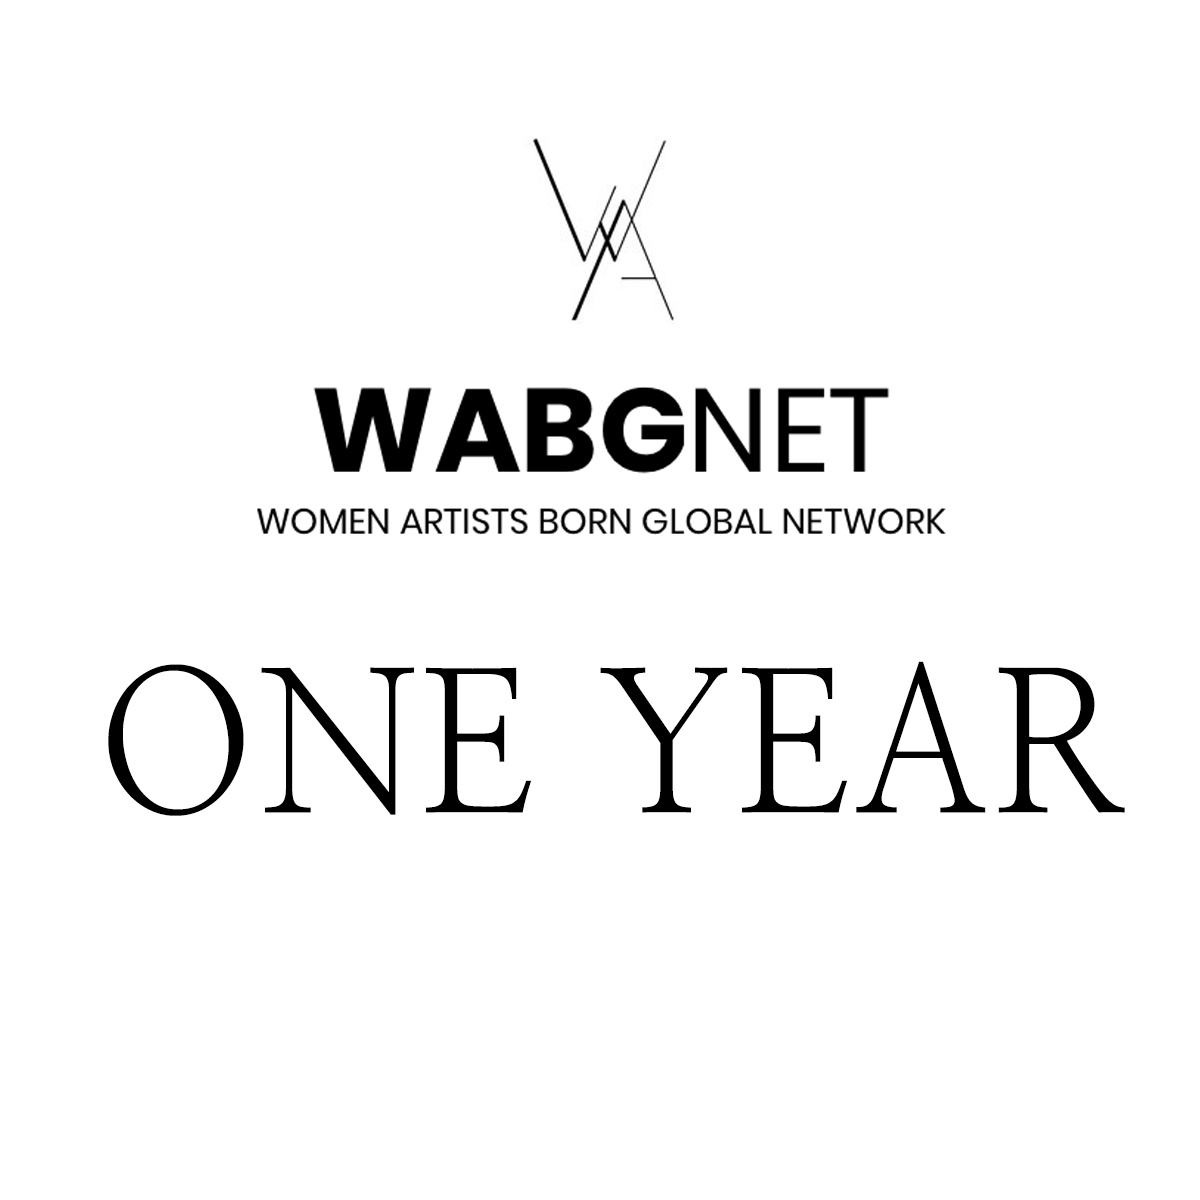 wabgnet_instagram one year txt.jpg